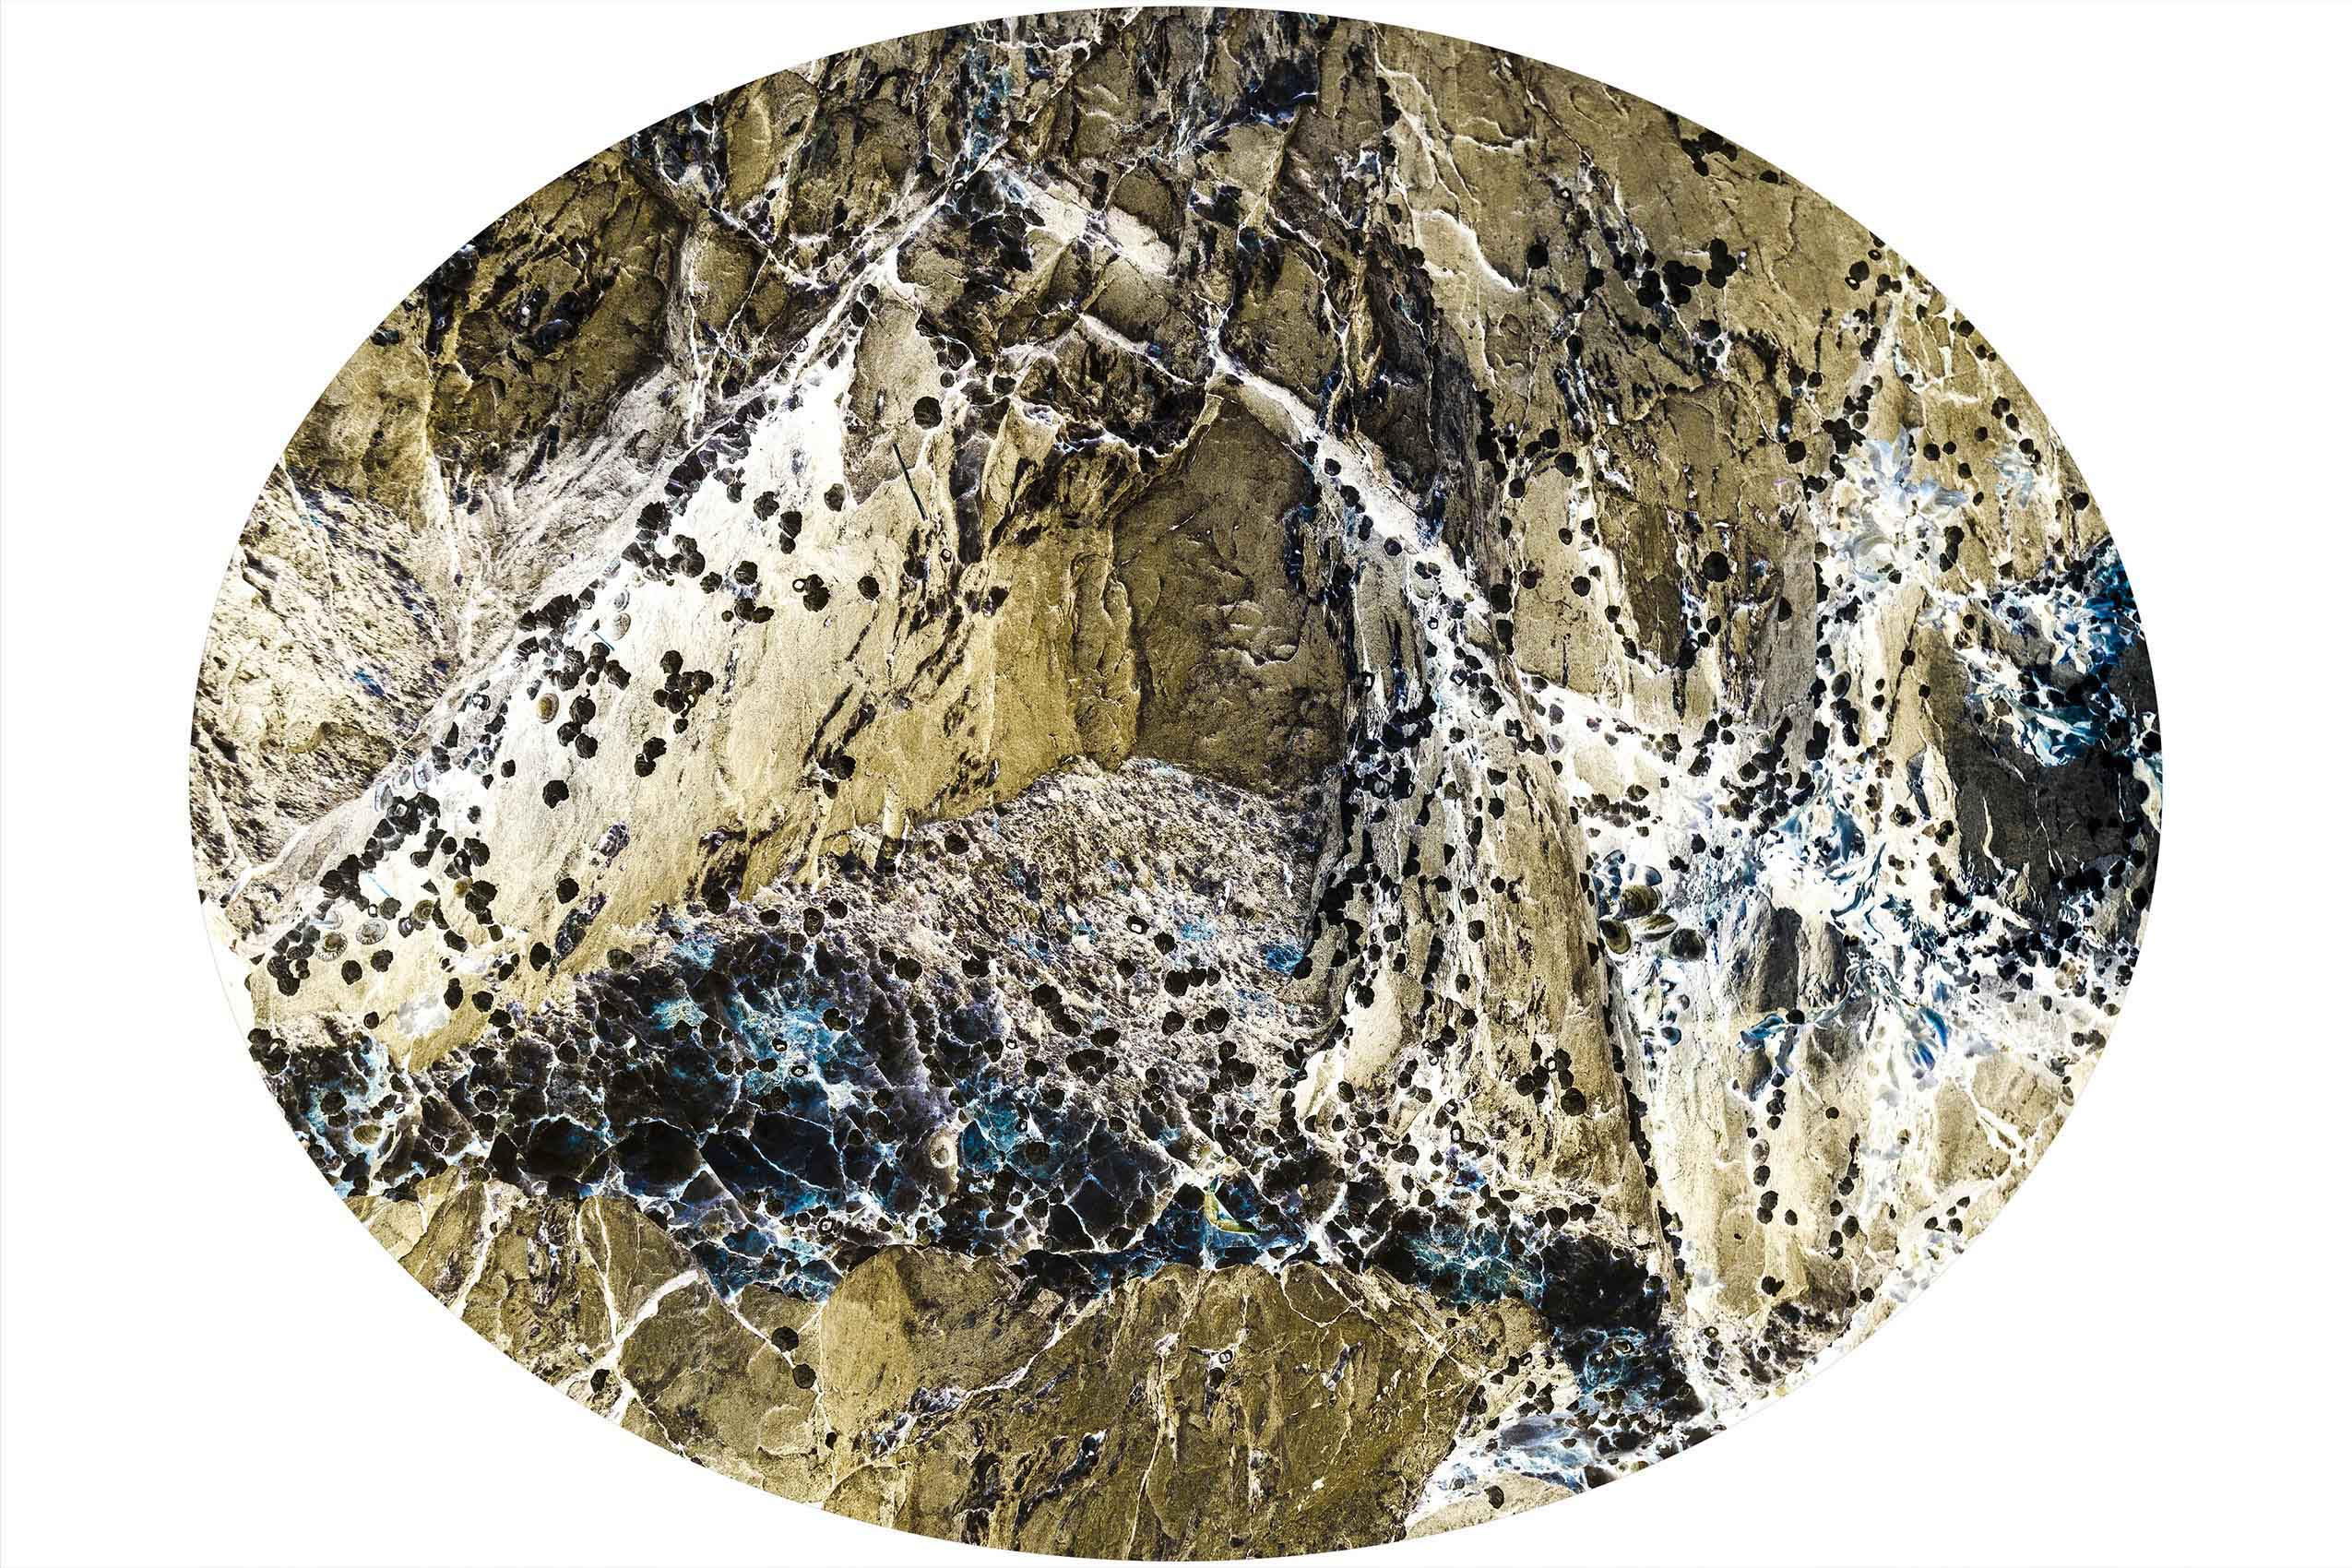 Wilderness OVAL MIRROR-Christin Paige Minnotte-1005 58 x 47 inches SMALL.jpg